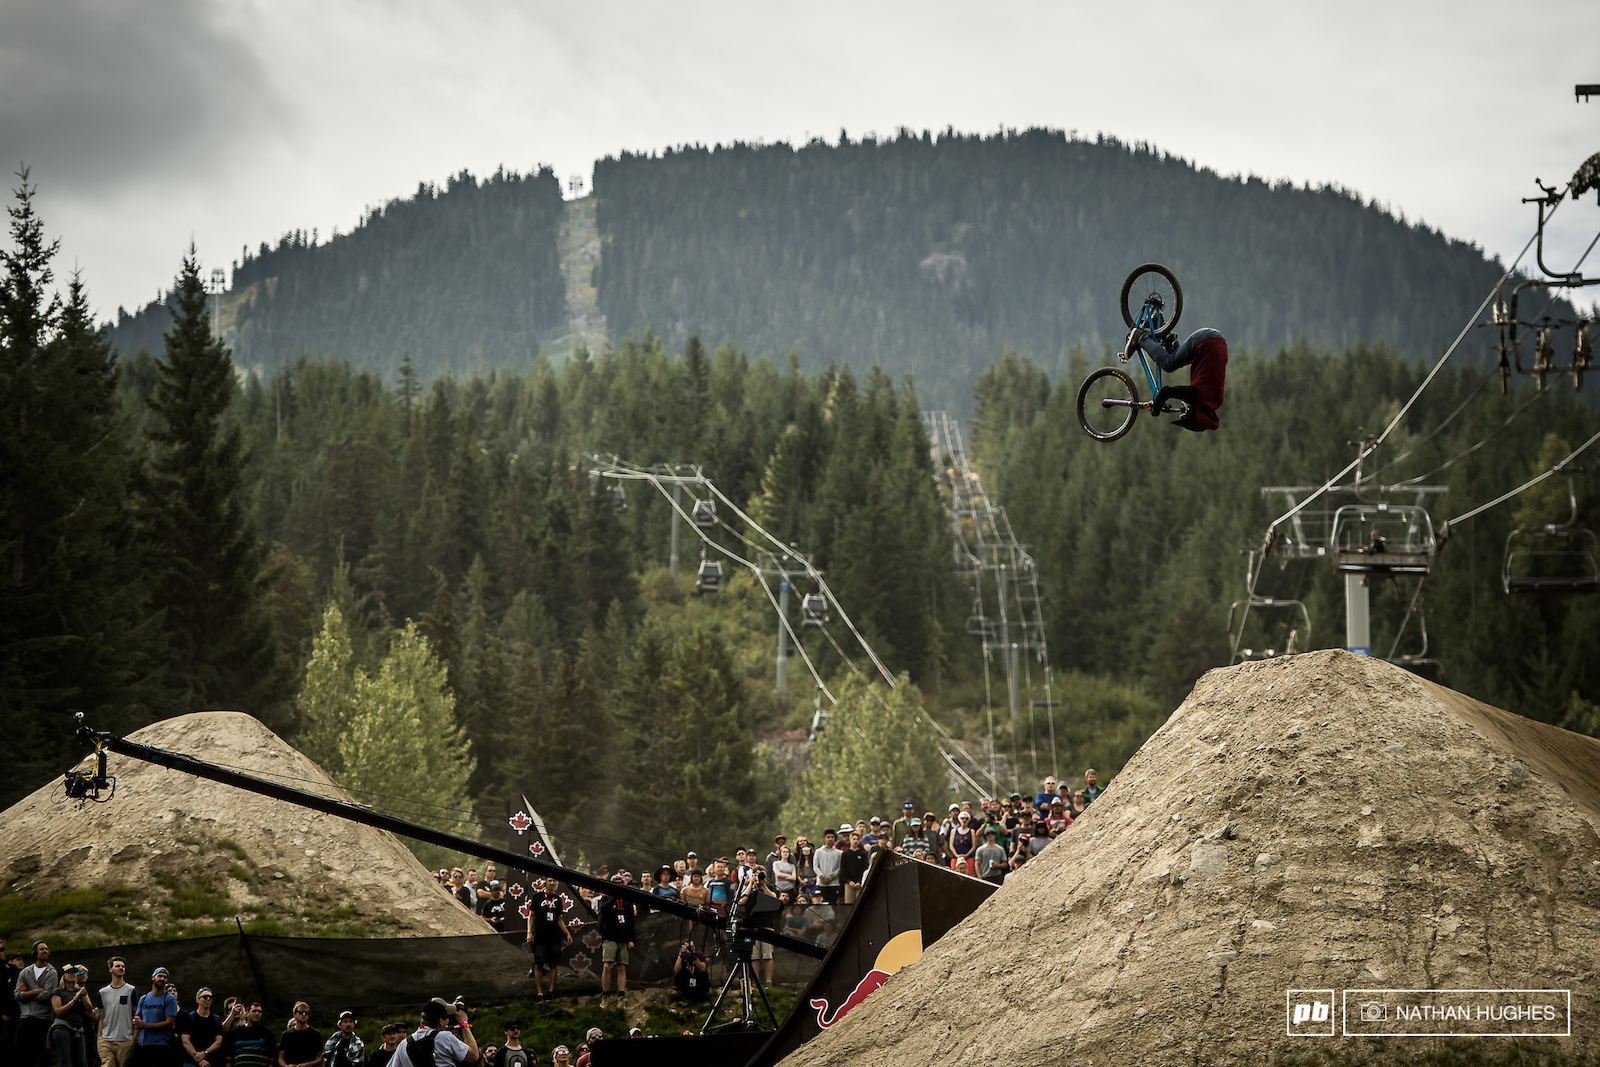 Diego Caverzasi on a front flip rampage that claimed him 6th place.